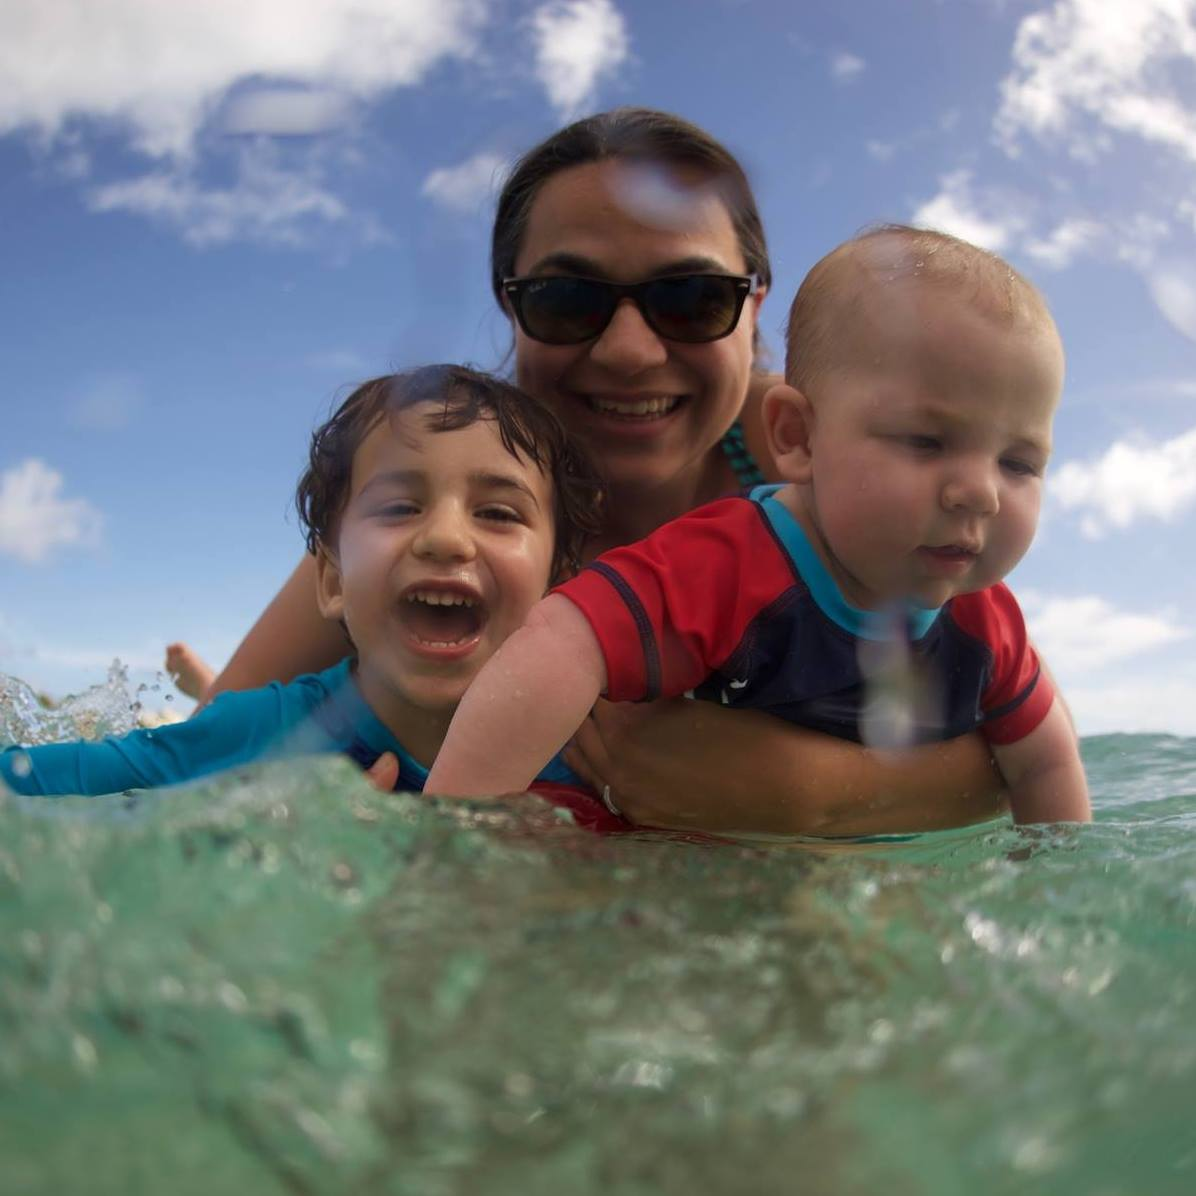 Me and my water babies playing in the ocean at a warmer time of year.